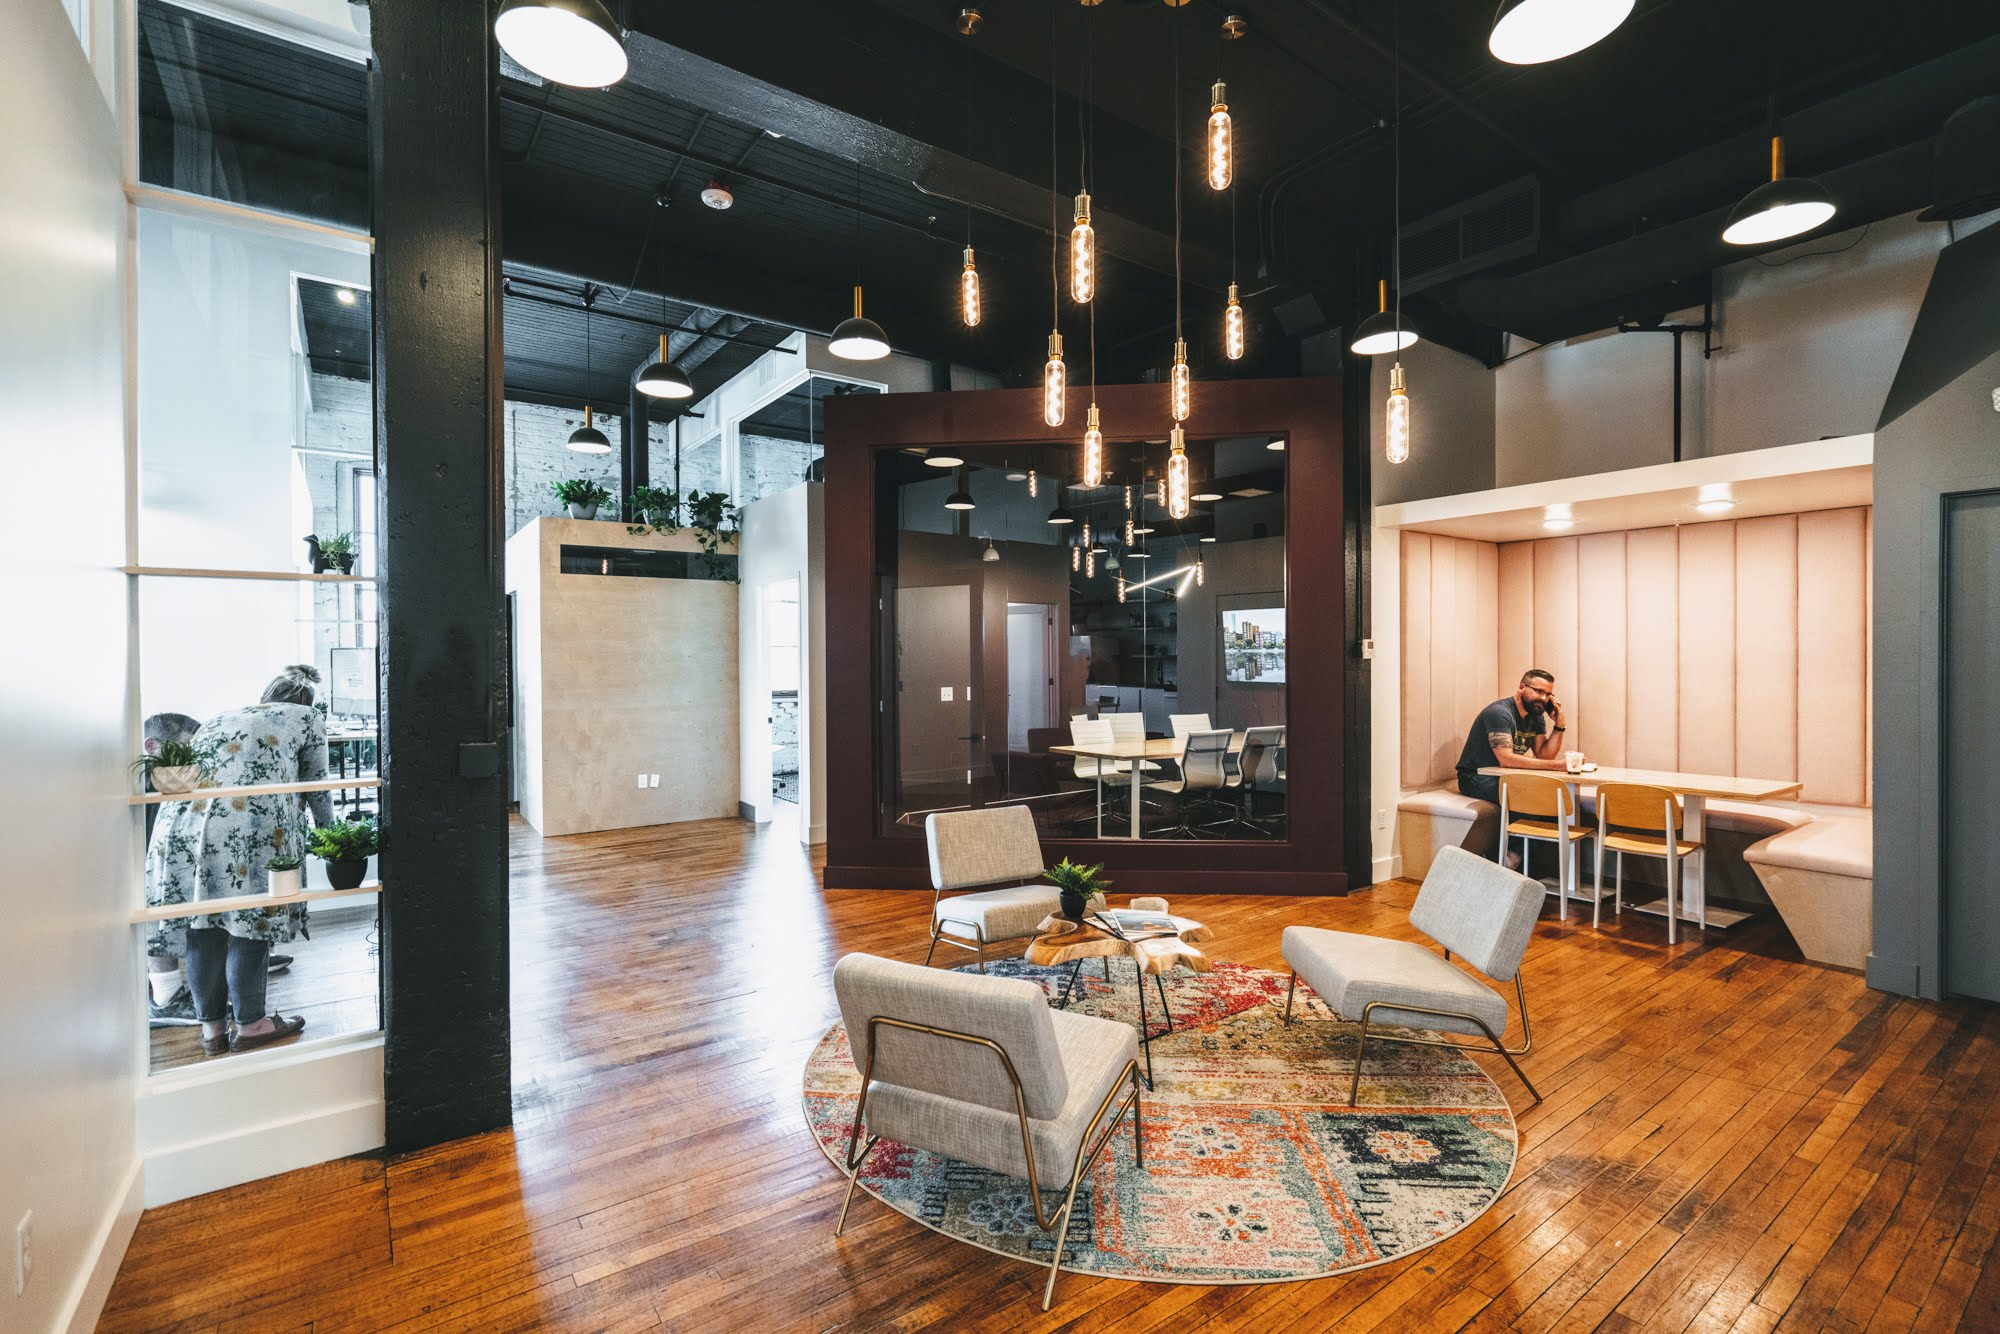 A coworking space